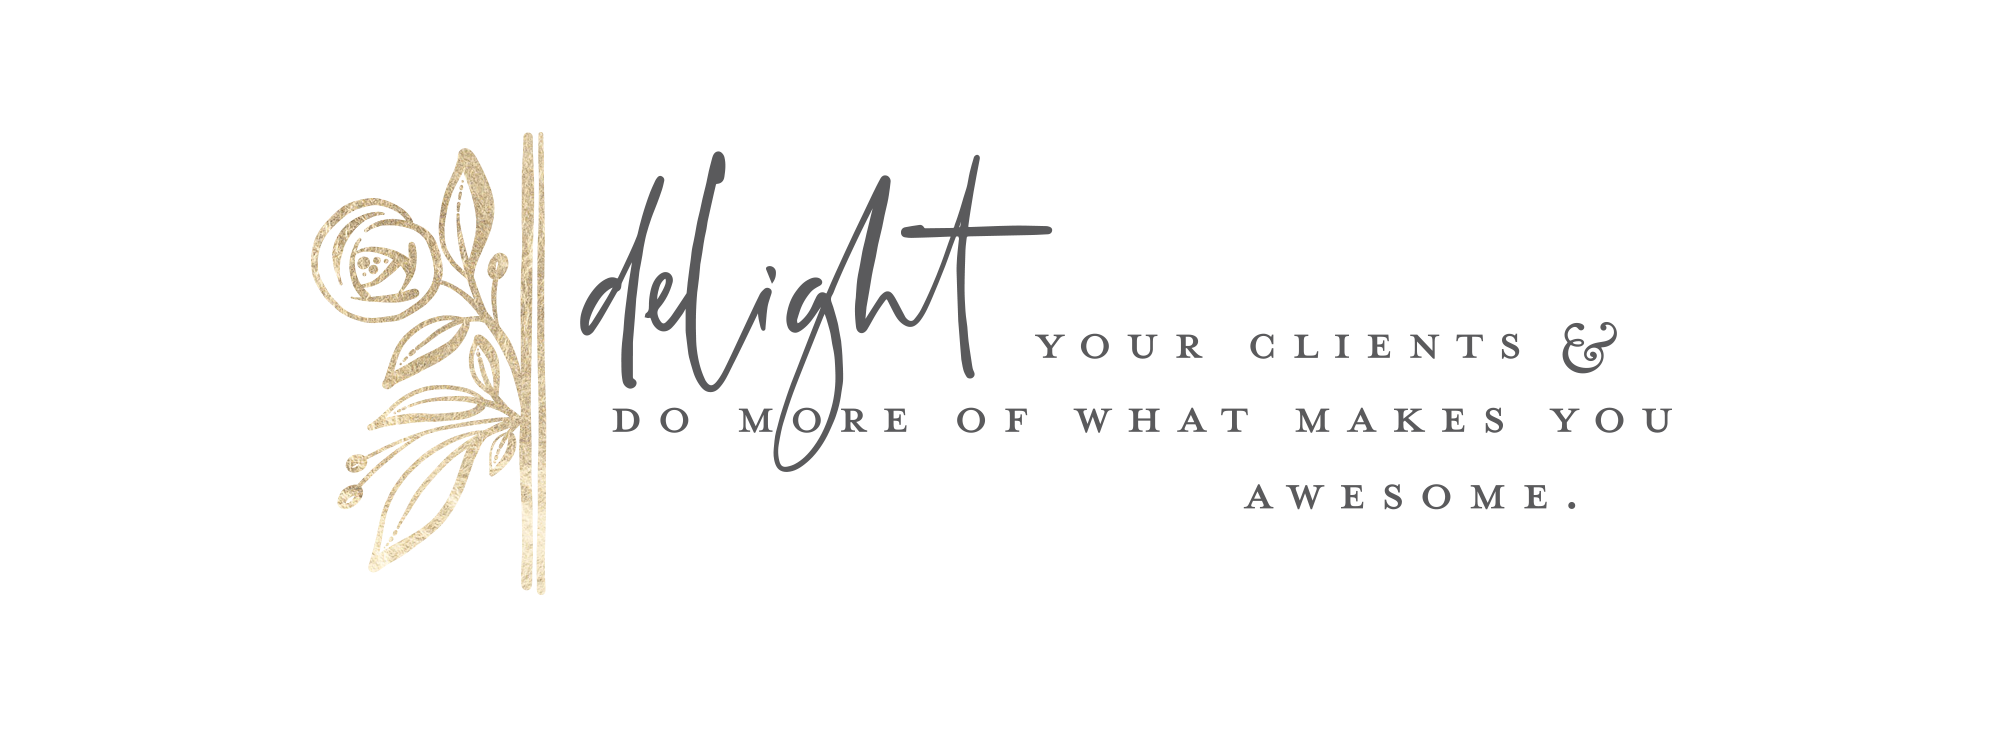 tag line - Delight your clients and do more of what makes you awesome. - EW Couture. Templates for Photographers